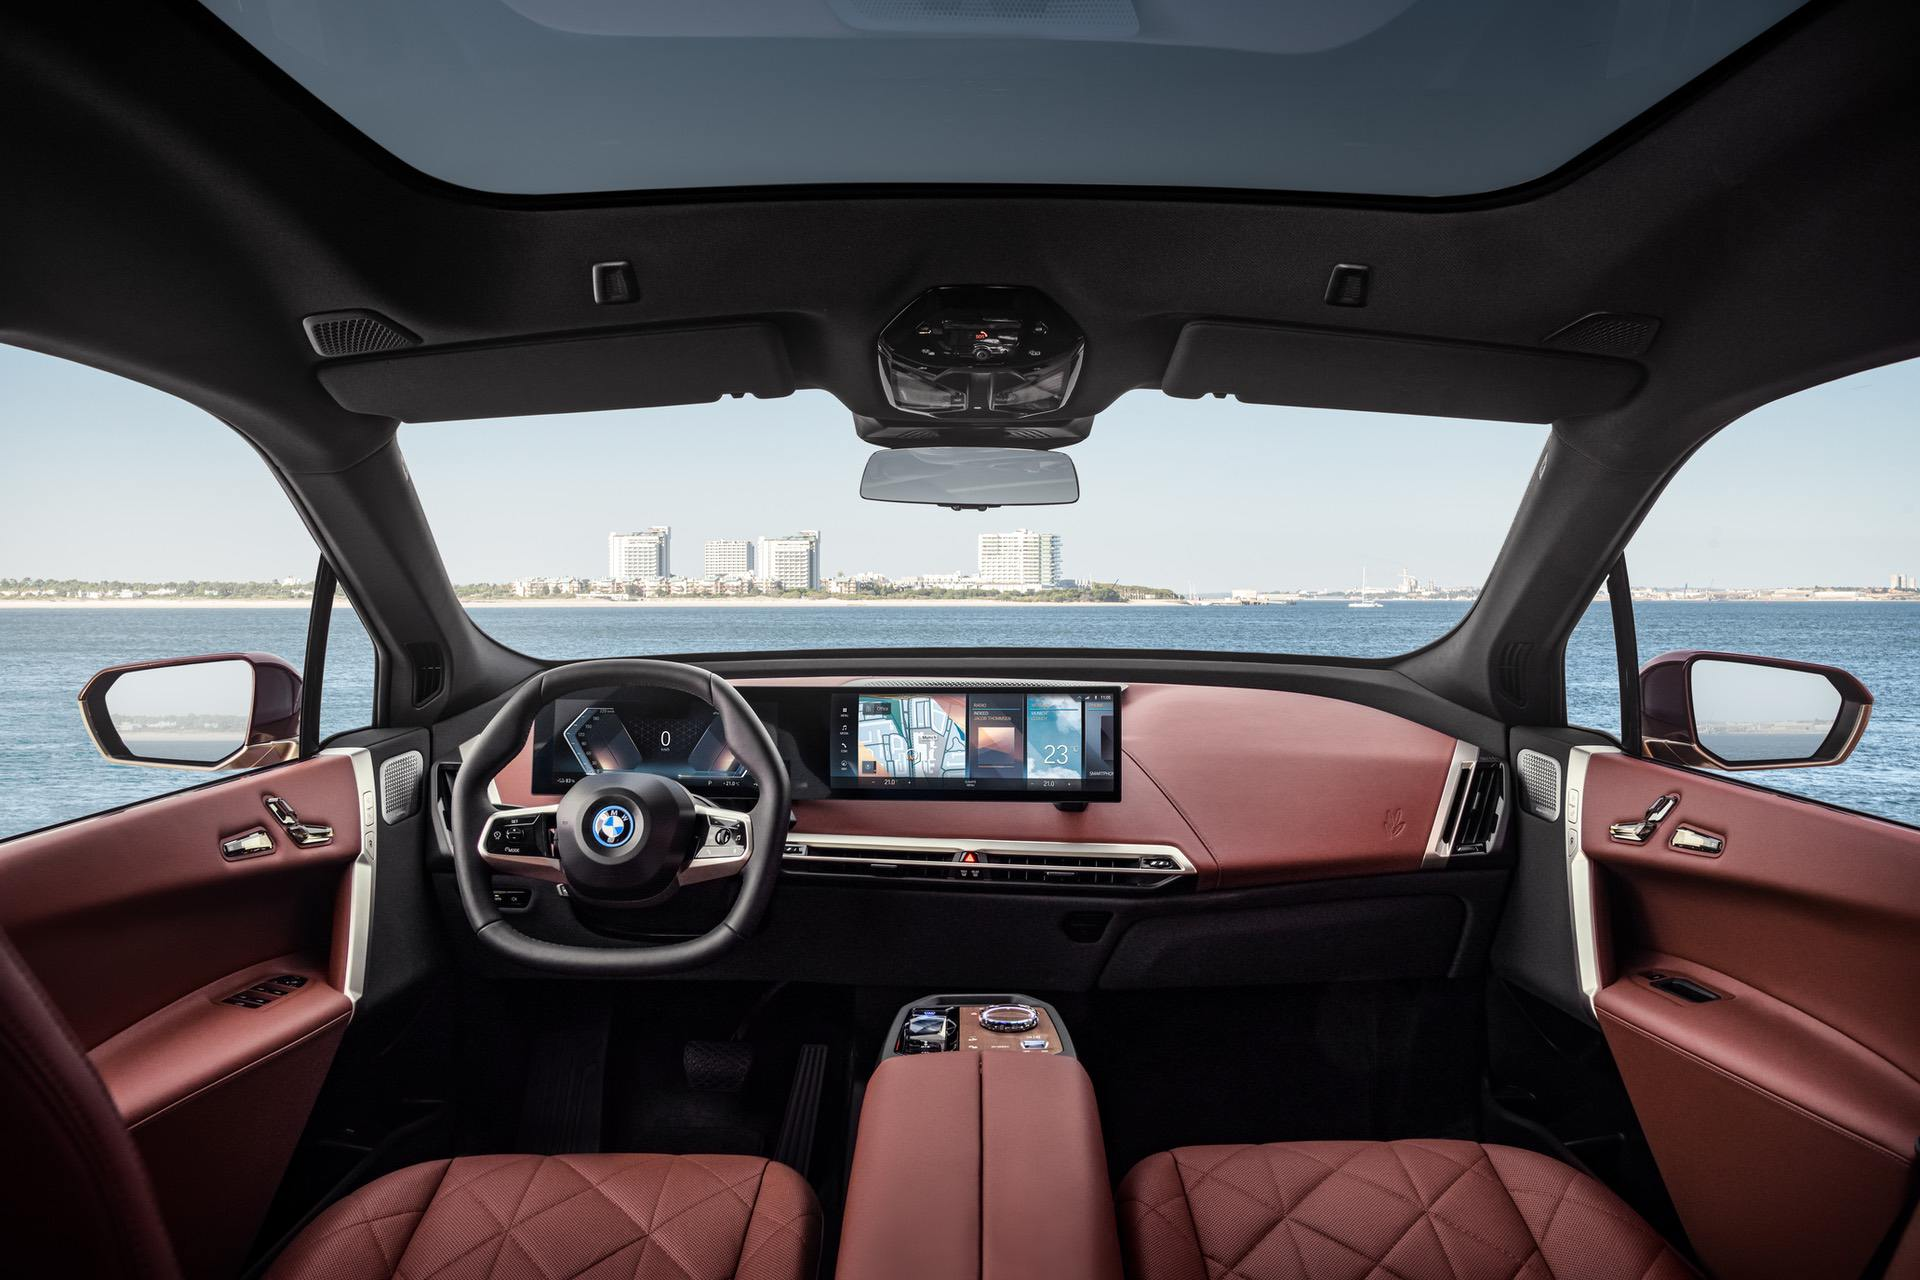 2022-bmw-ix-interior-20.jpg